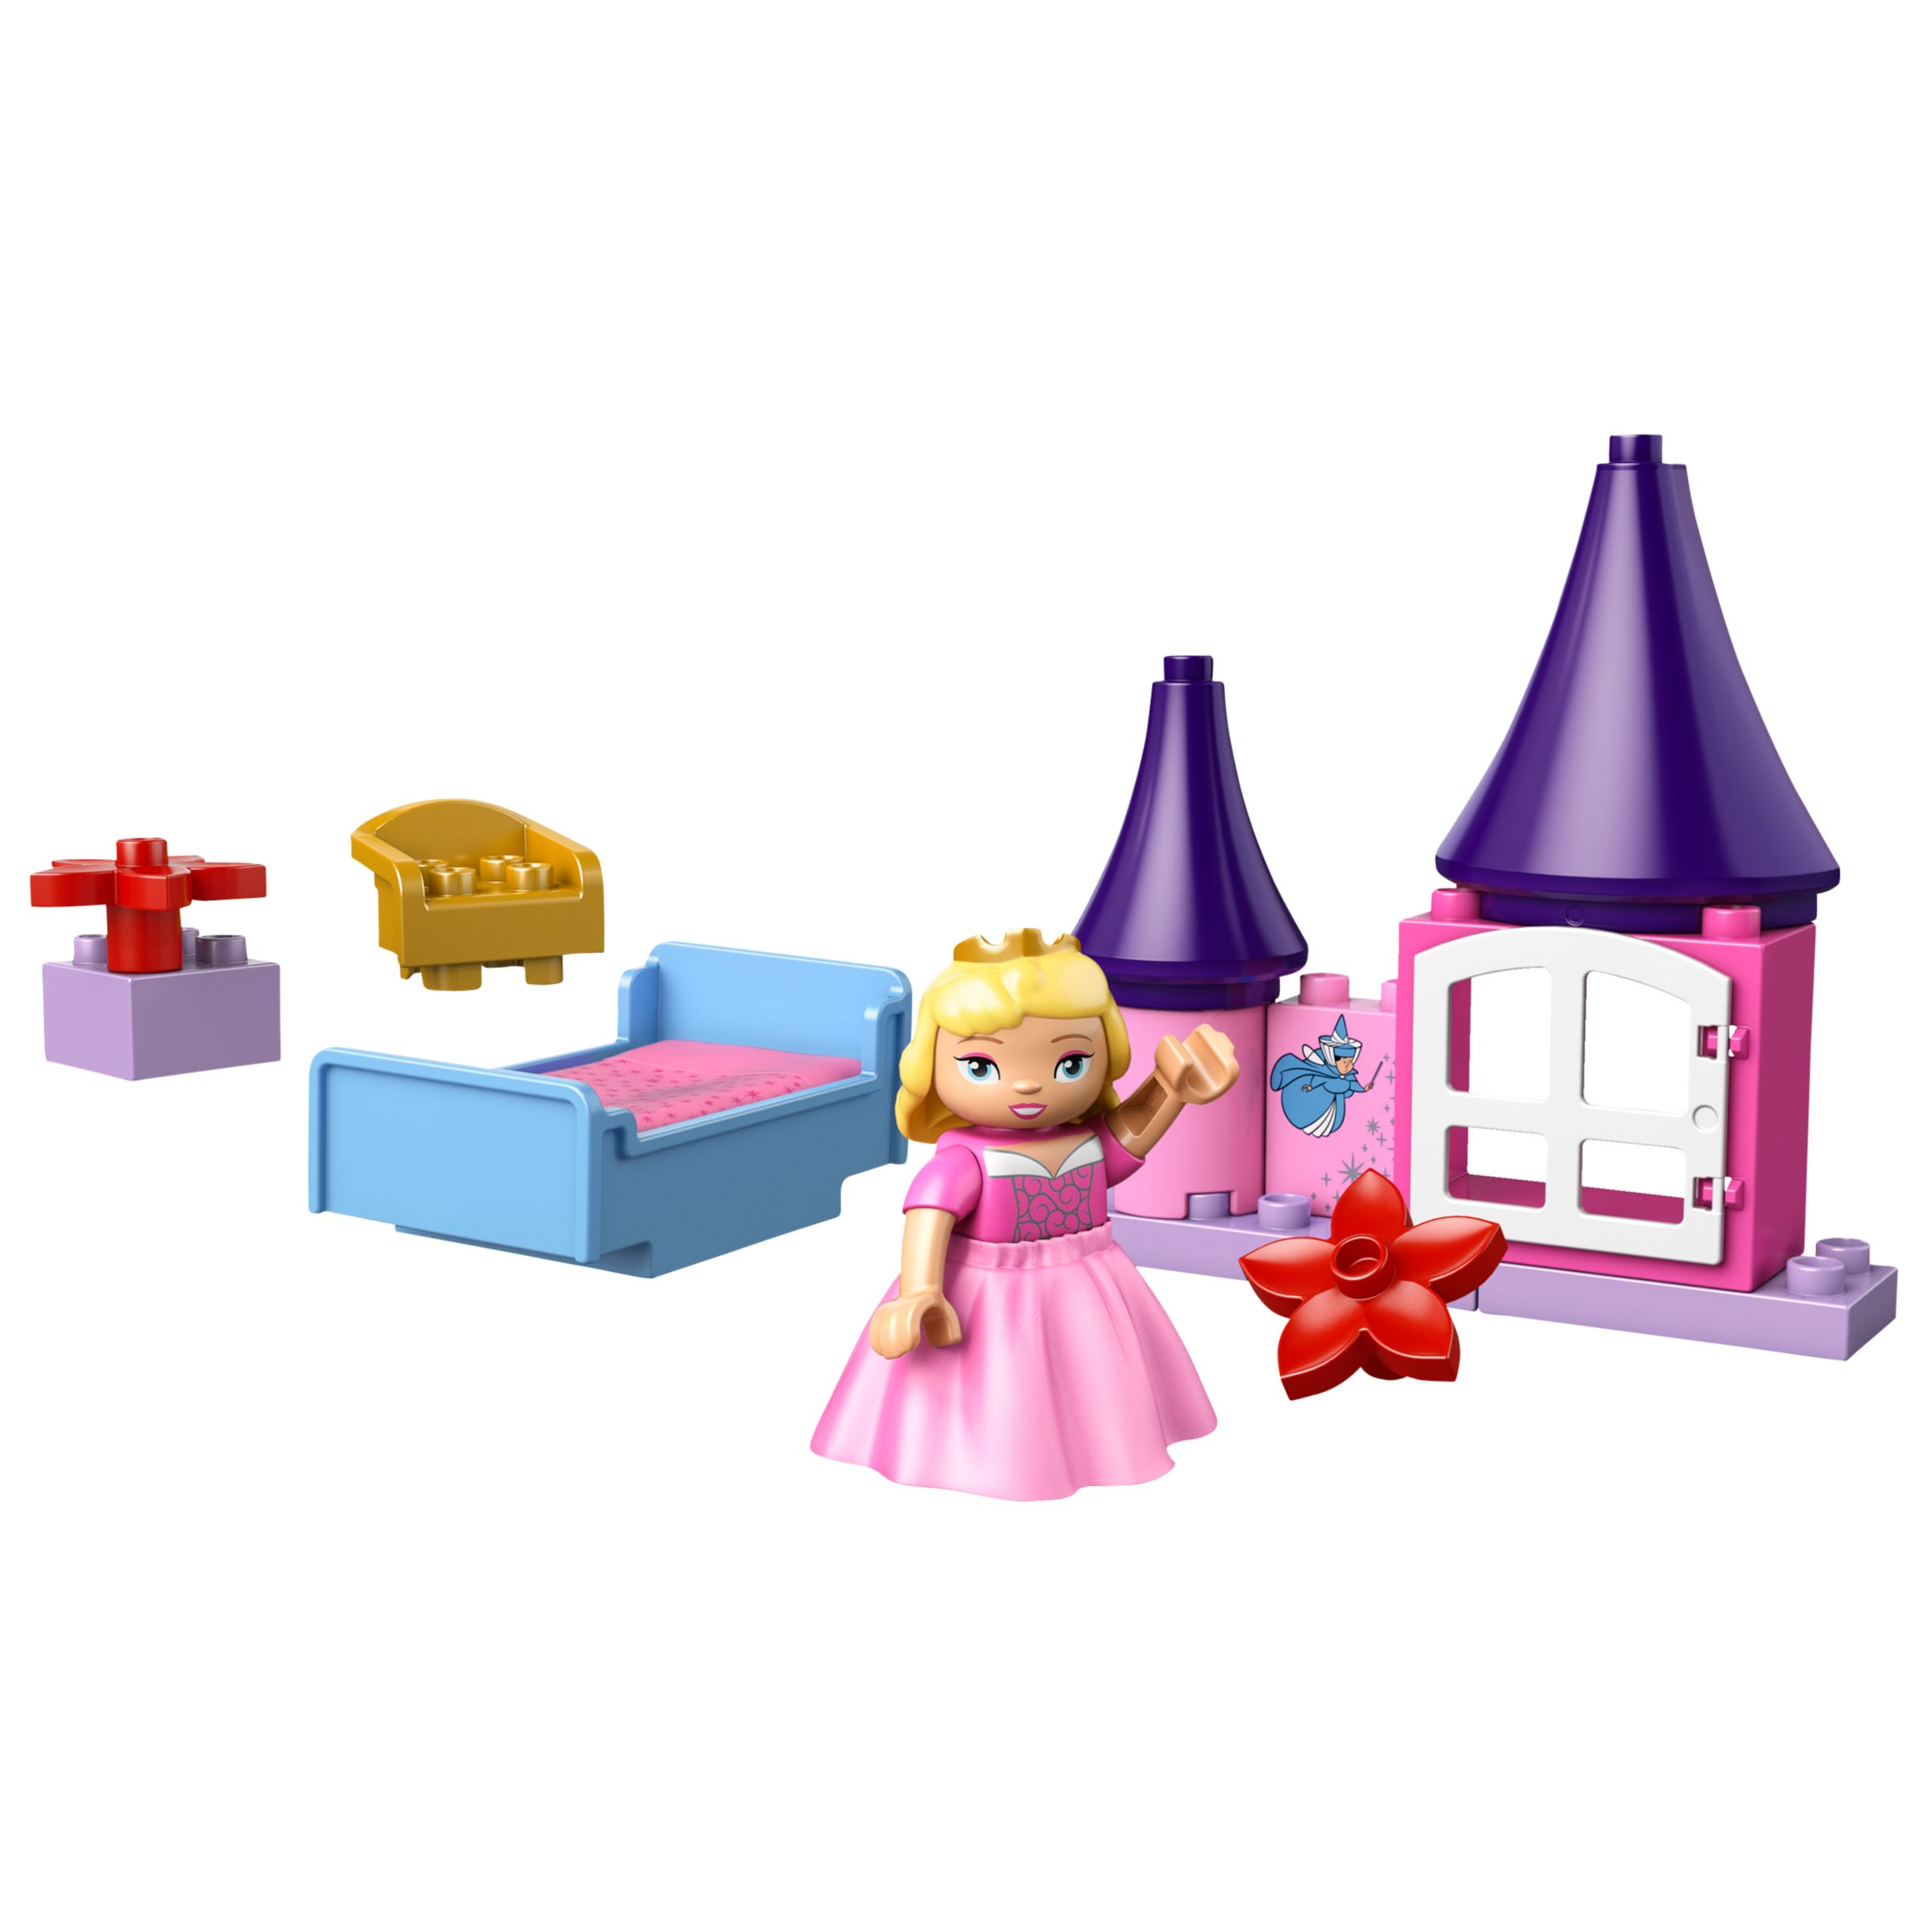 Lego Duplo Disney Princess Sleeping Beauty's Room